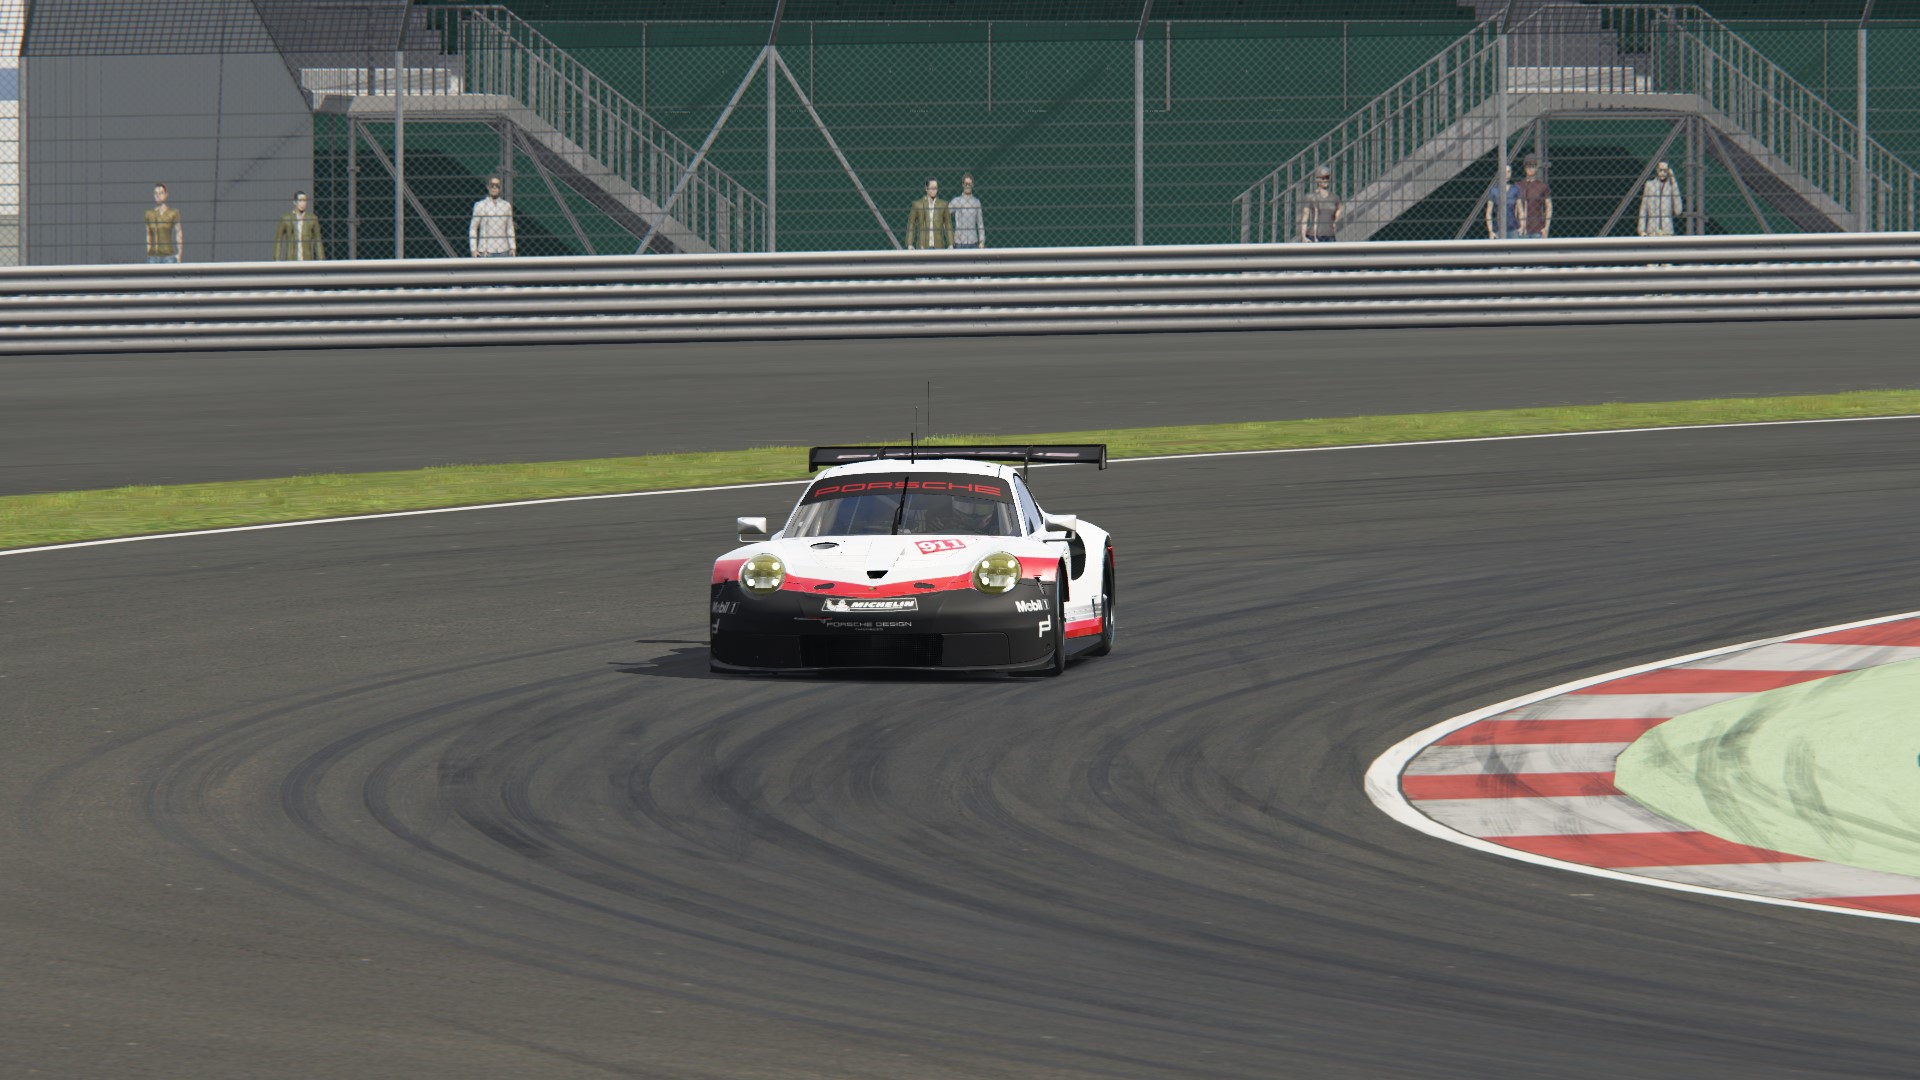 Assetto Corsa Car Setup Guide - Notice how a turning car leans towards the outside of the turn.